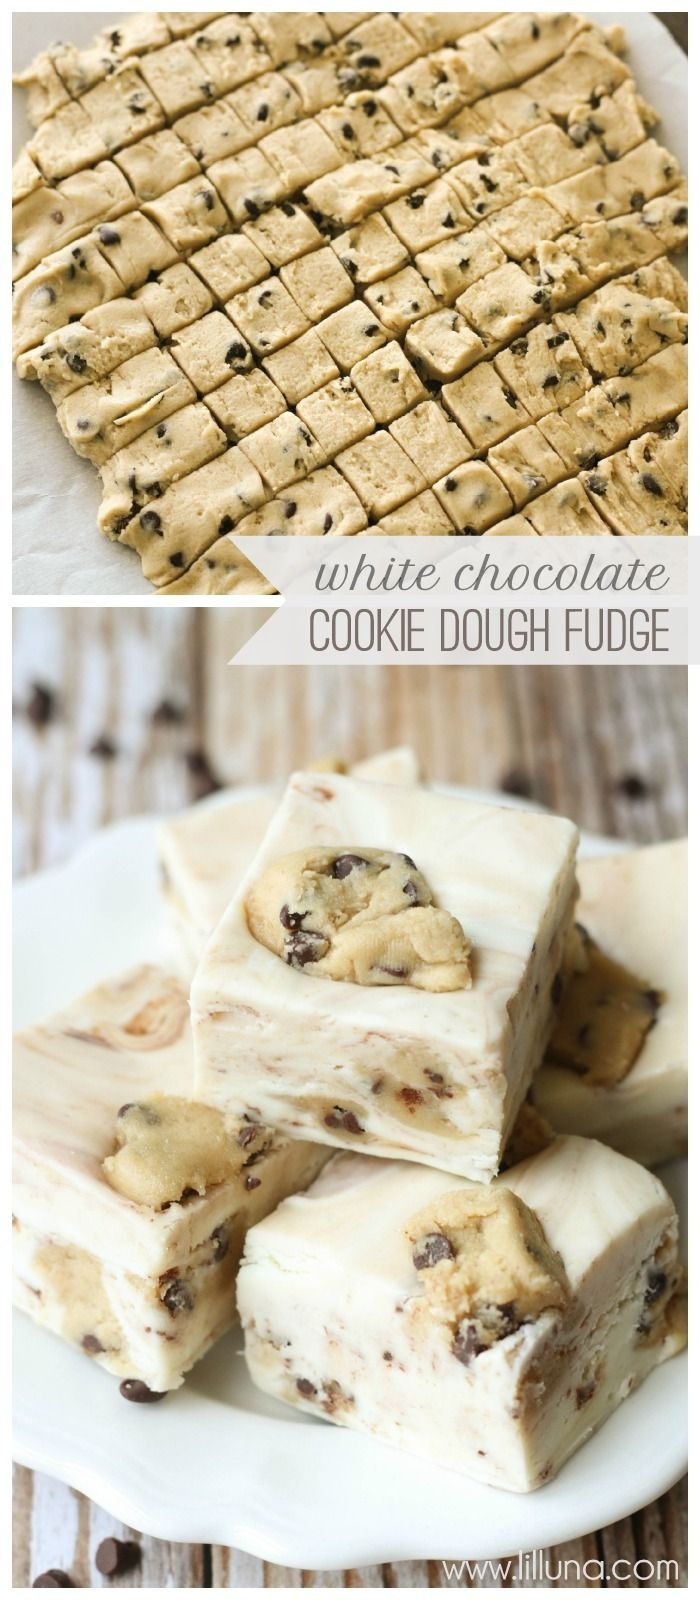 150 best White Chocolate images on Pinterest | Recipes, White ...